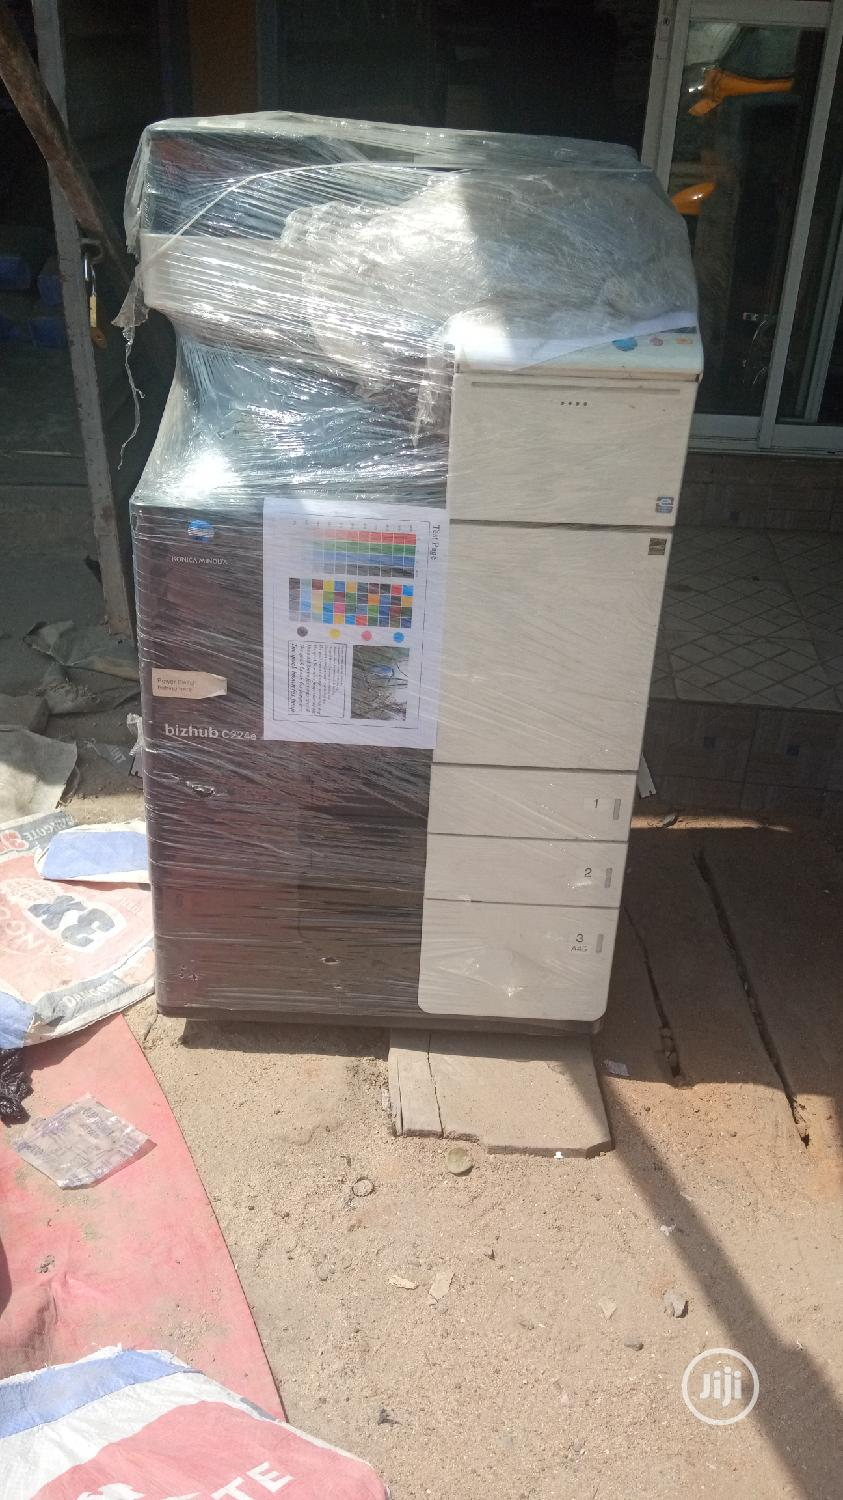 Bizhub C224e Photocopier | Printers & Scanners for sale in Surulere, Lagos State, Nigeria